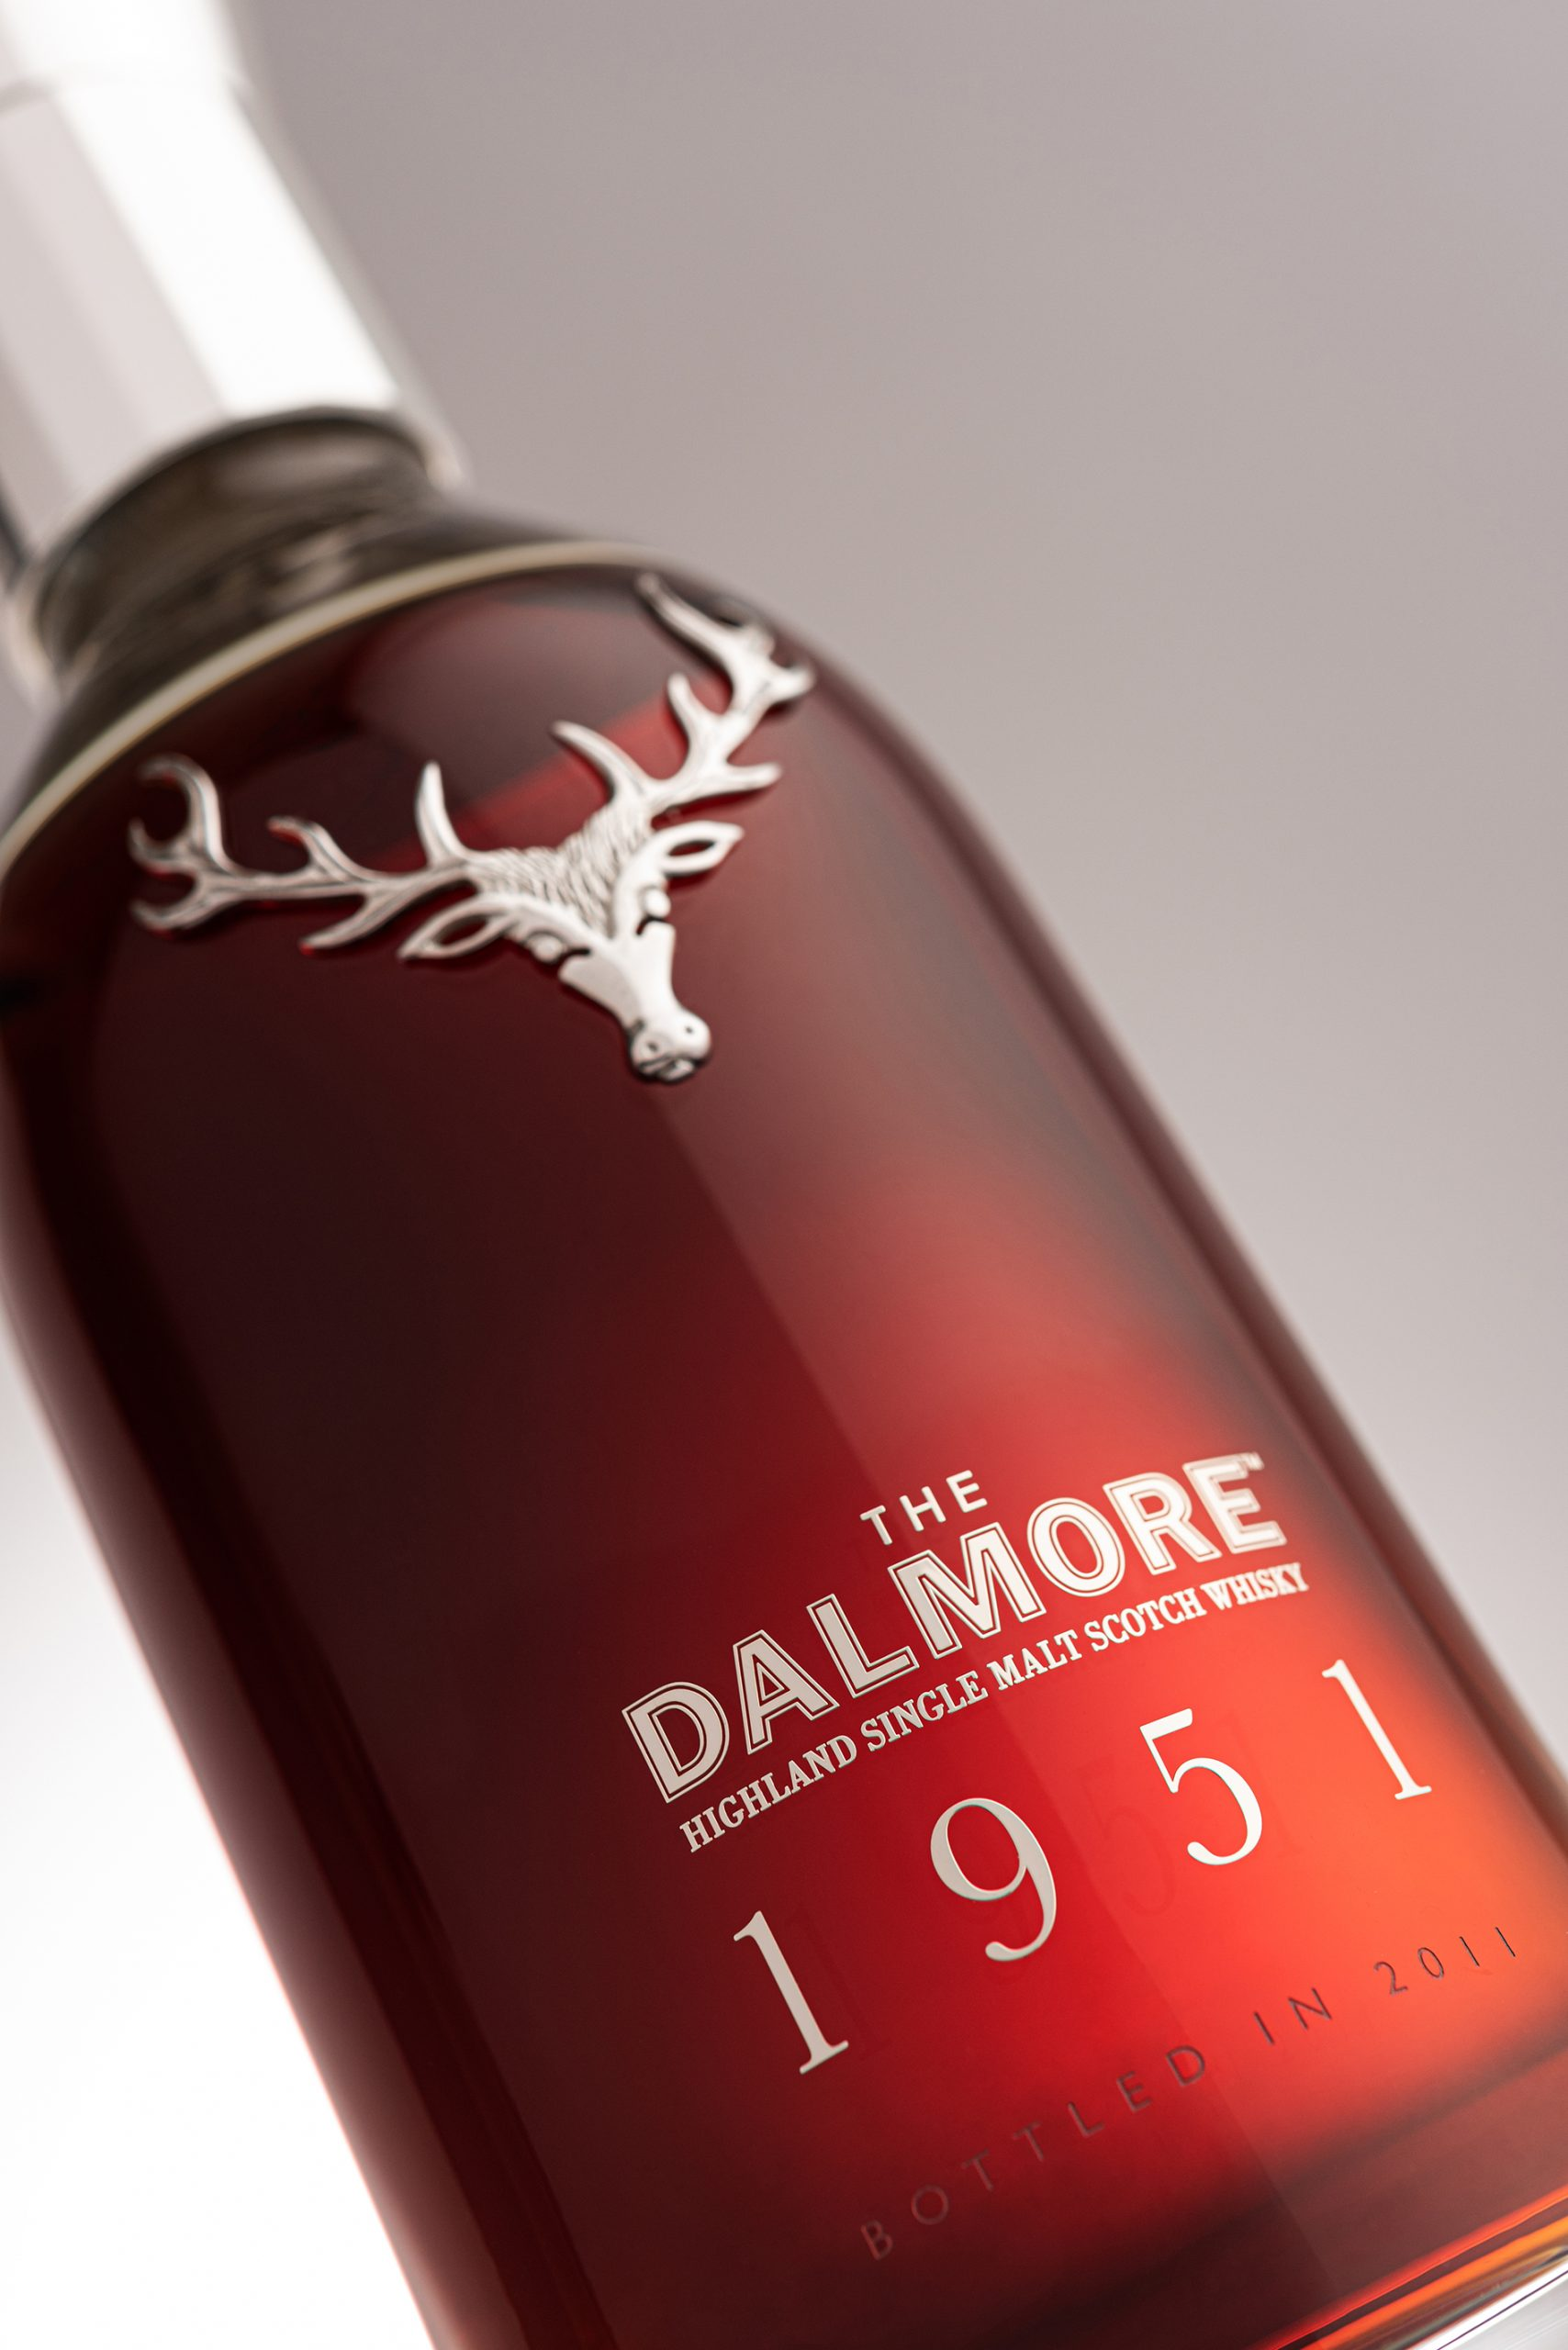 The Dalmore 60 Year Old - News